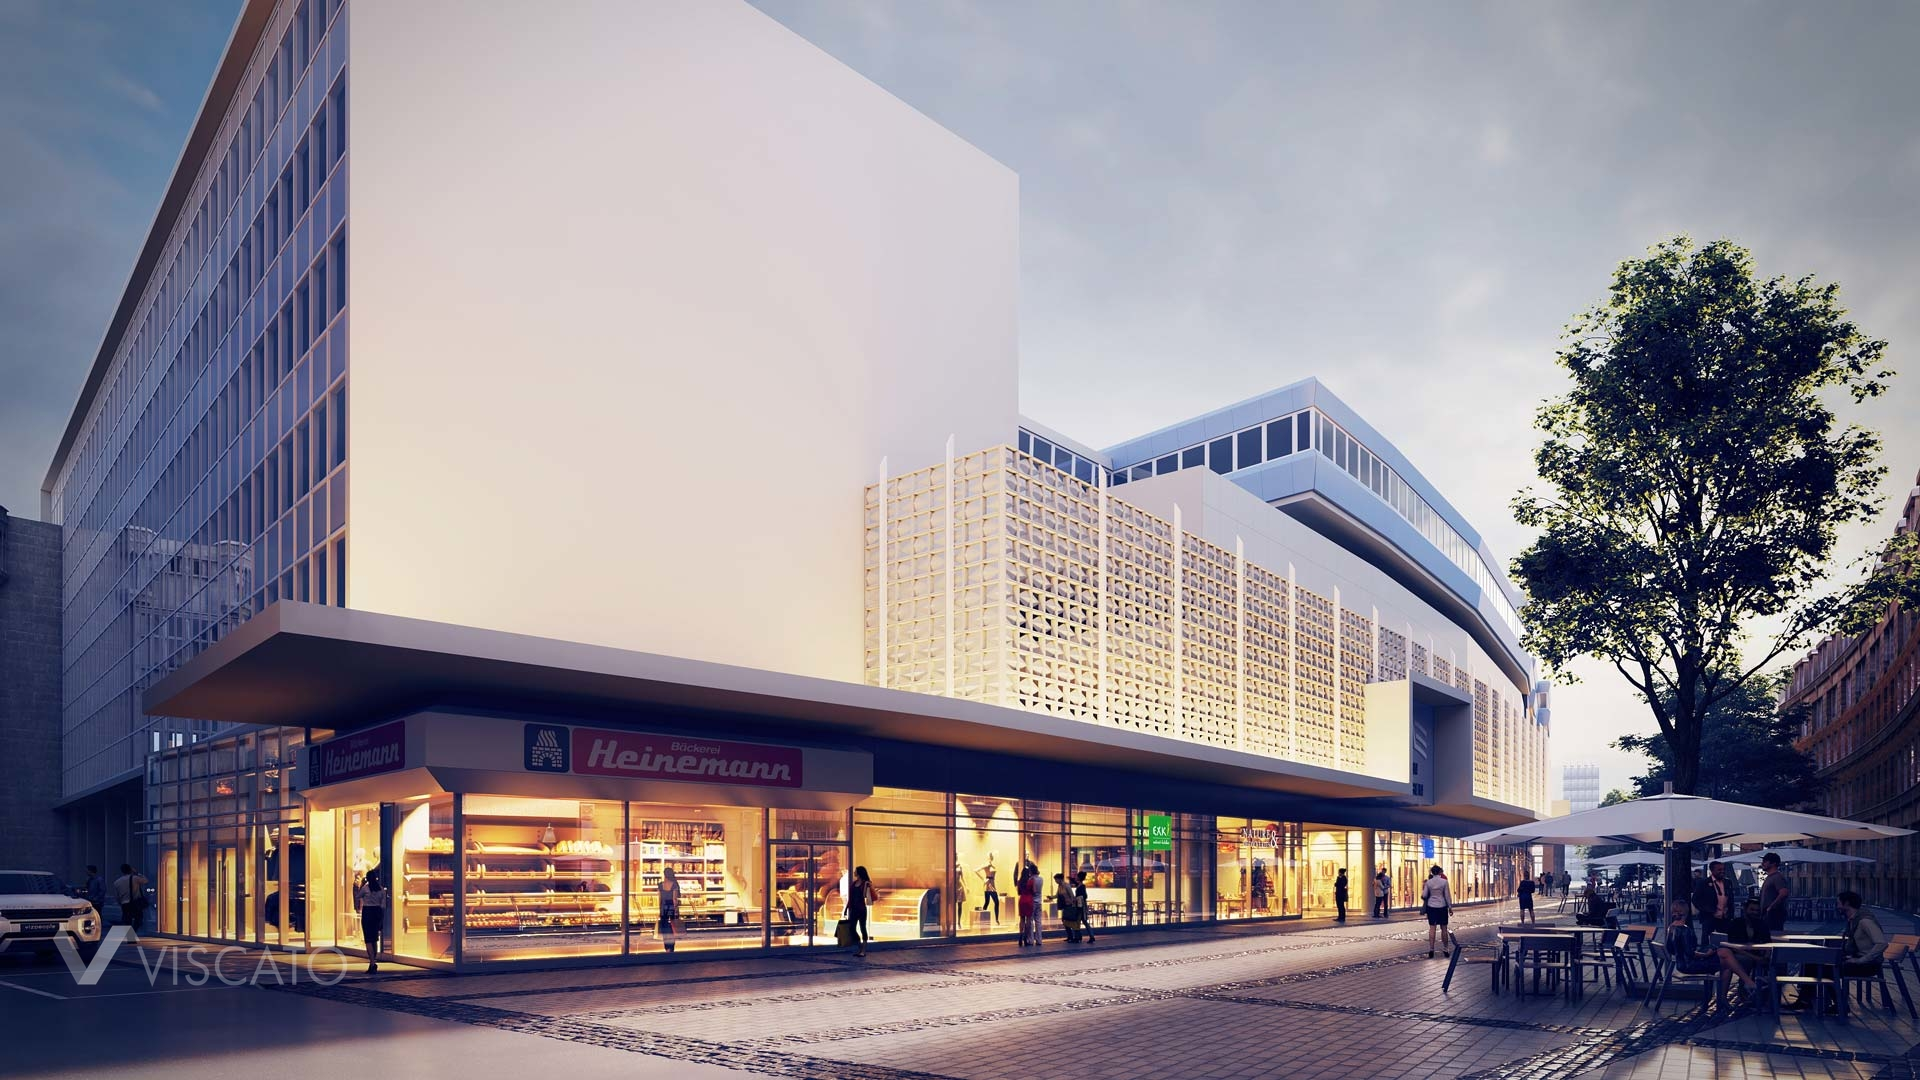 3D mall with open work facade, Viscato